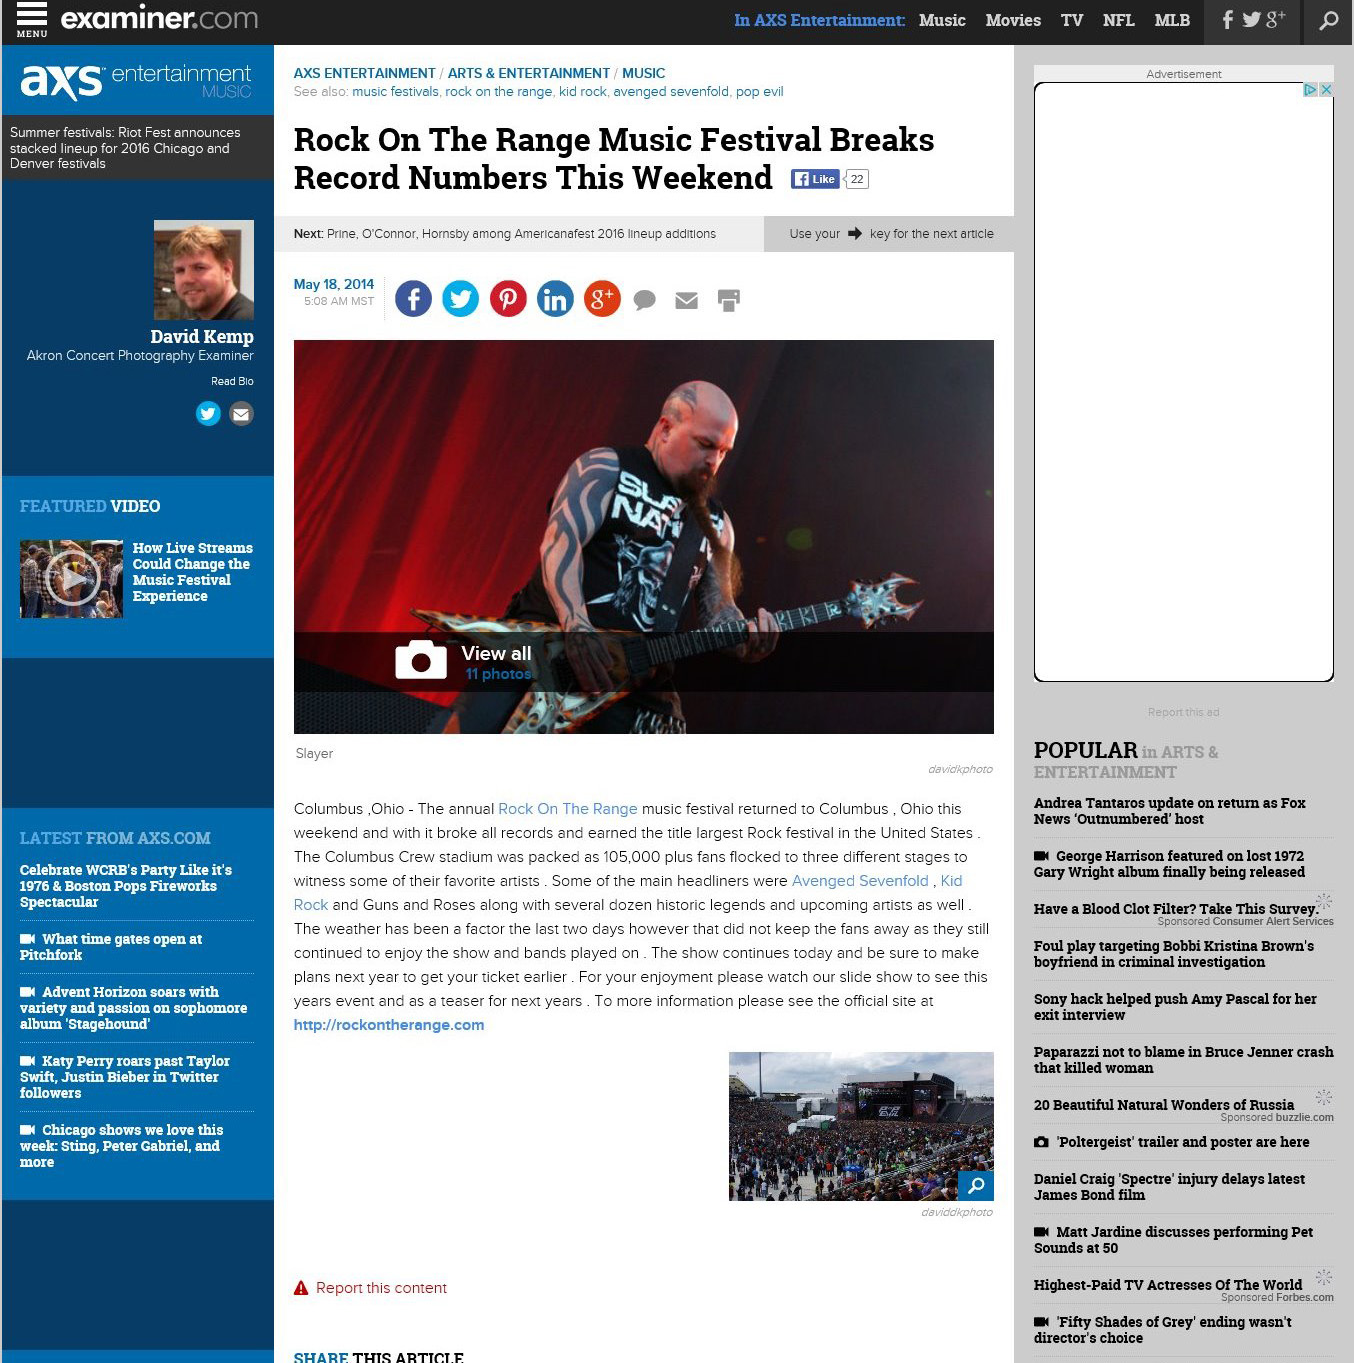 microsoft-edge-web-notes-rock-on-t909184046